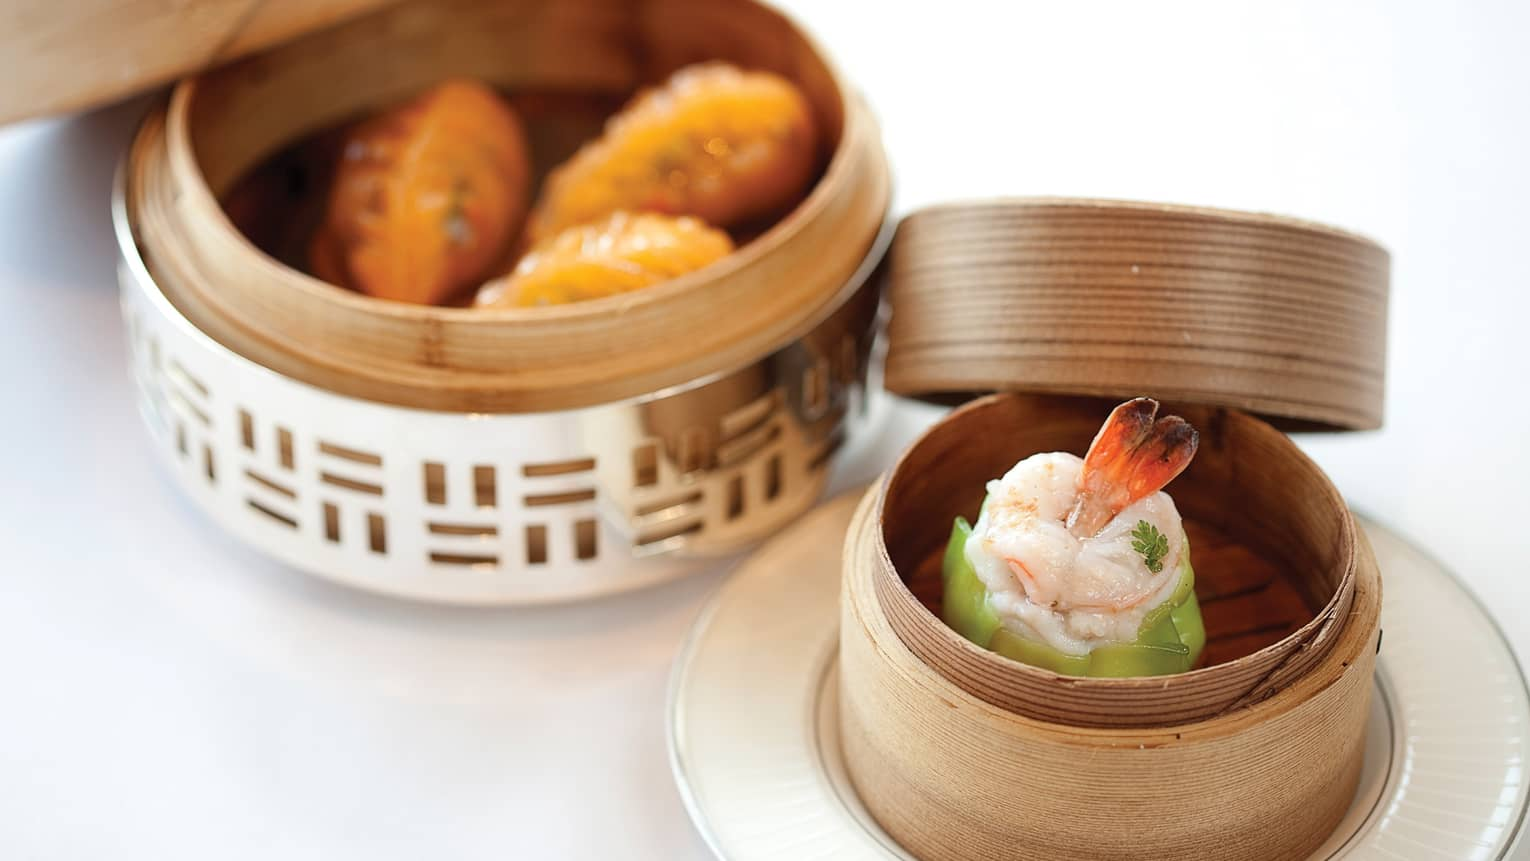 Two bamboo baskets with steamed lobster, dumplings